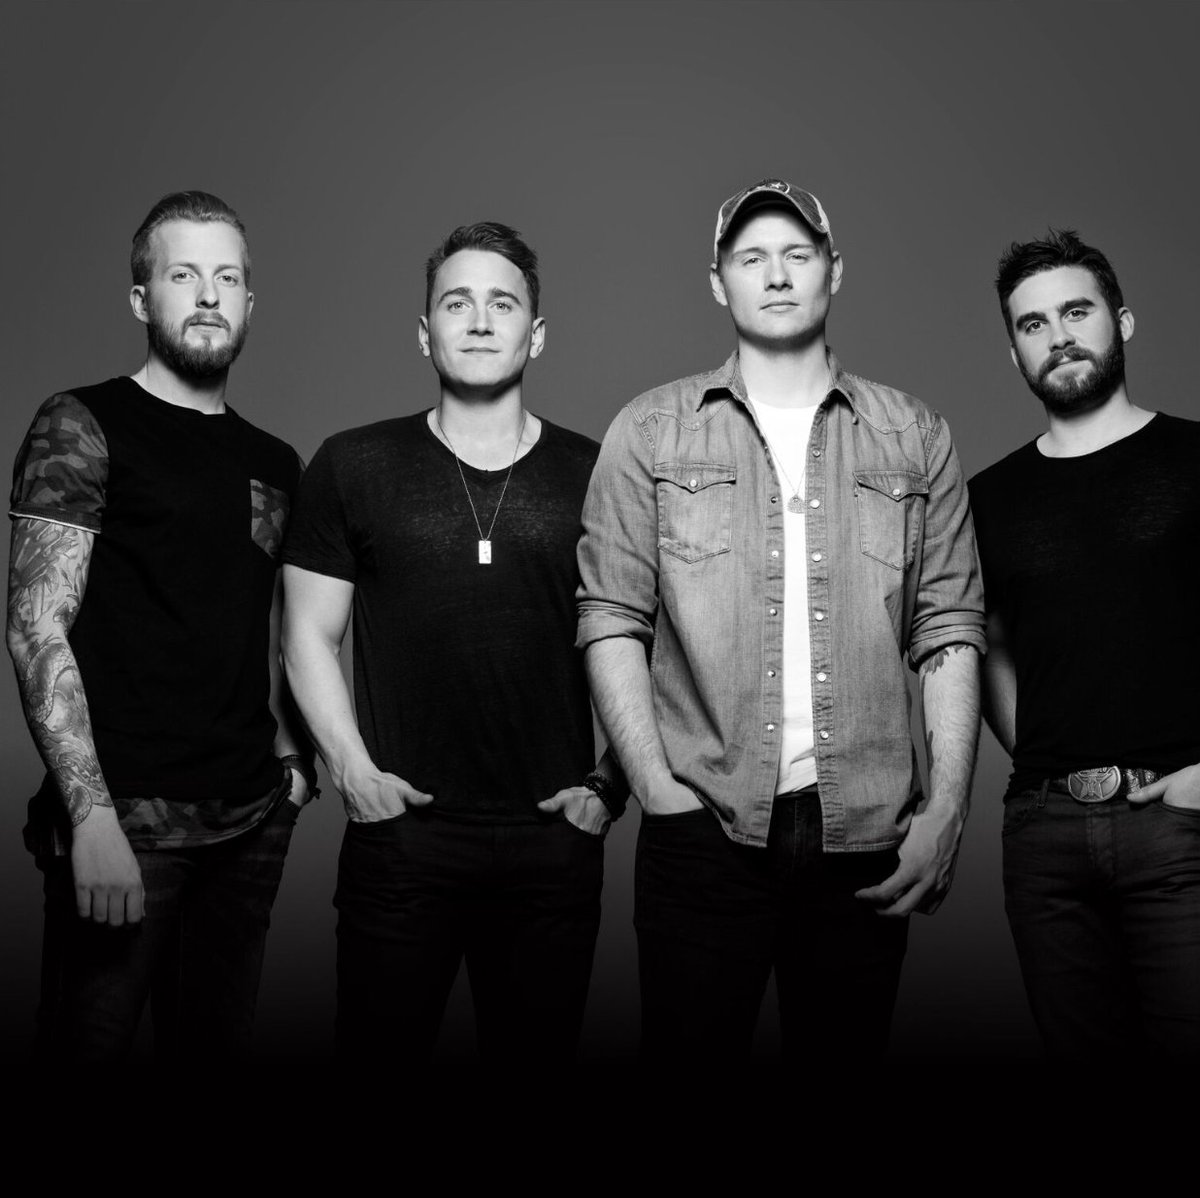 Ontario's @jamesbarkerband has been nominated for this year's @CCMAofficial Awards, including group or duo of the year. See the FULL list: https://t.co/CyP8Of5dEH #CCMAawards